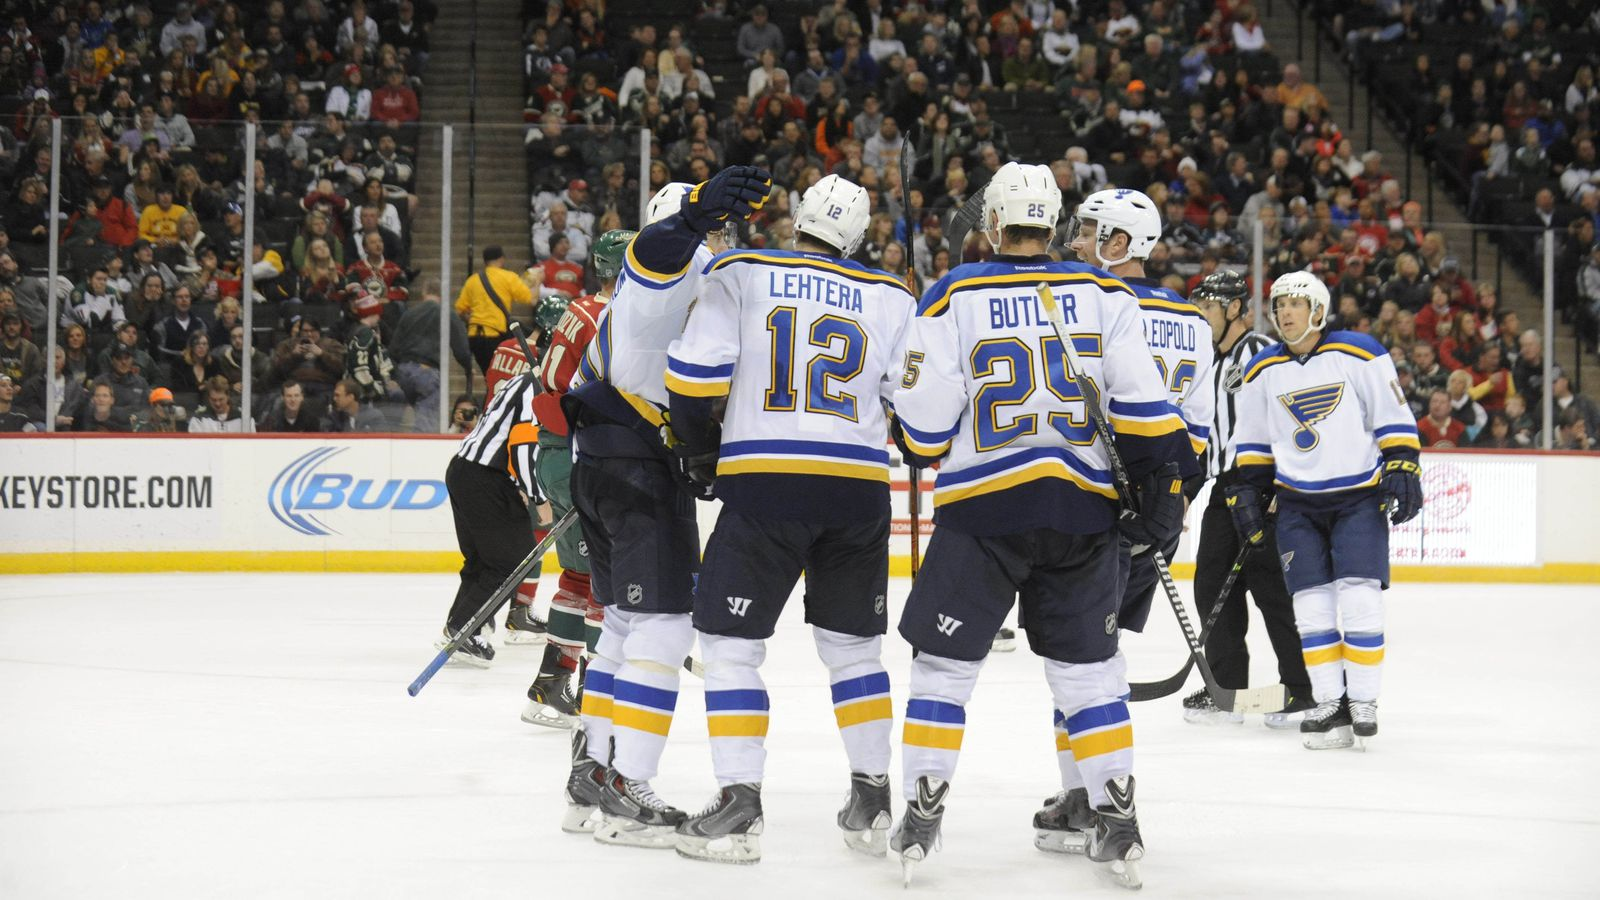 St. Louis Blues (NHL) Game Schedule | TV Guide